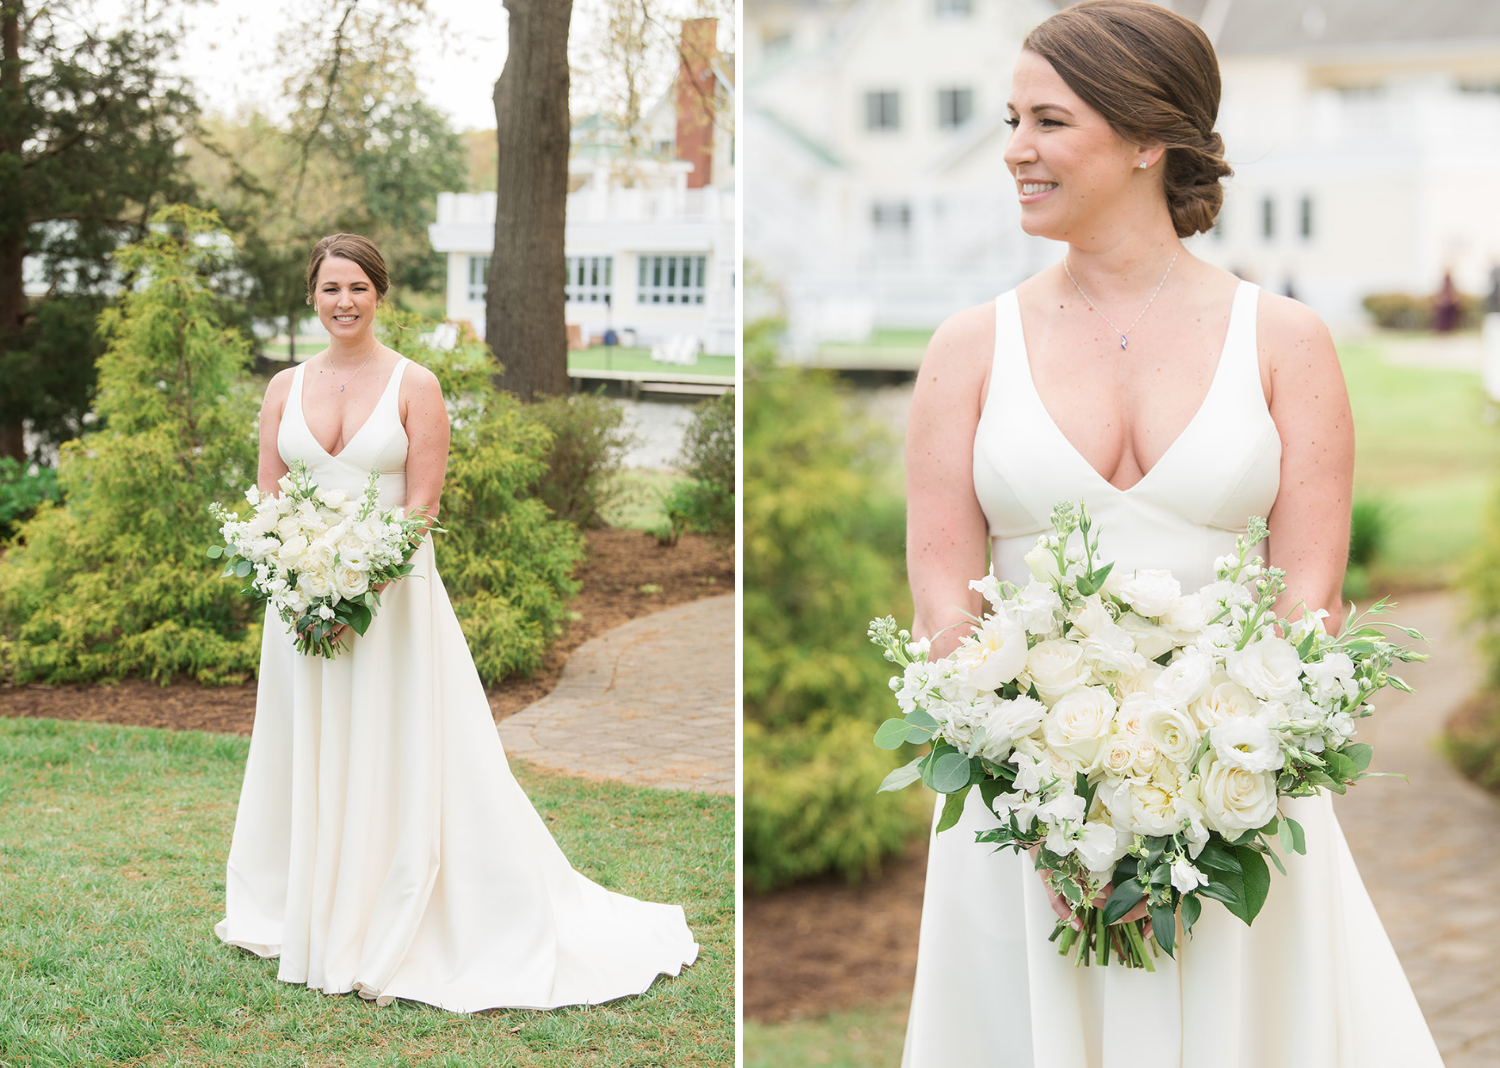 bride smiles as she poses with her white wedding dress and beautiful white and green bridal bouquet